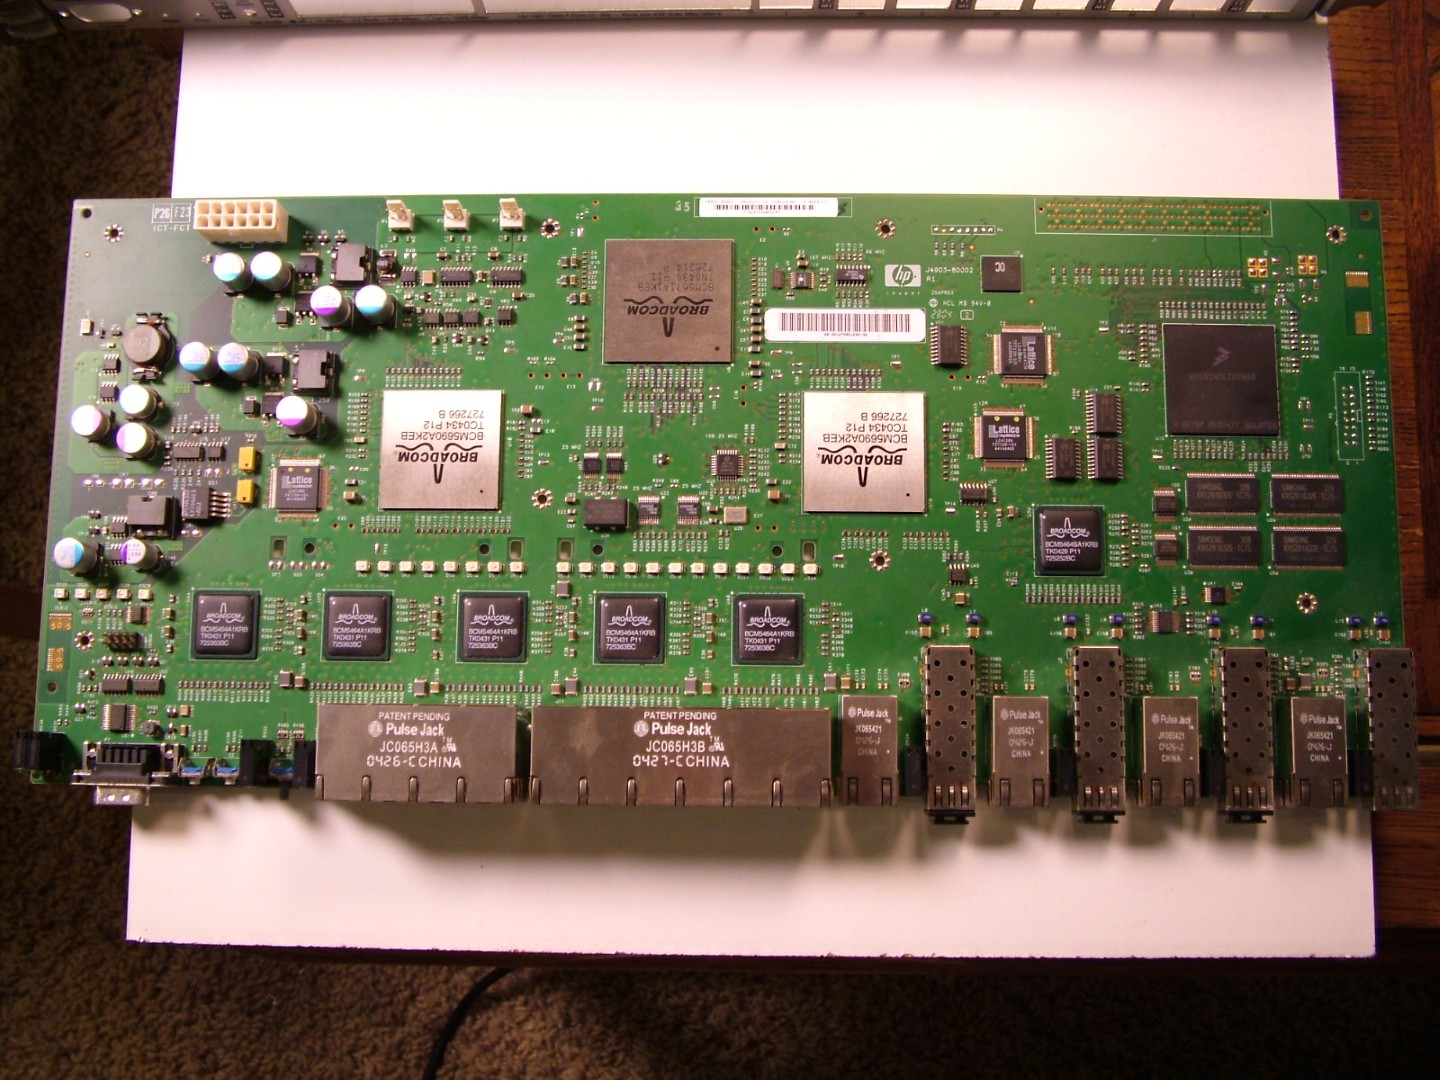 The Life of Kenneth: Tear-Down of an HP ProCurve 2824 Ethernet Switch